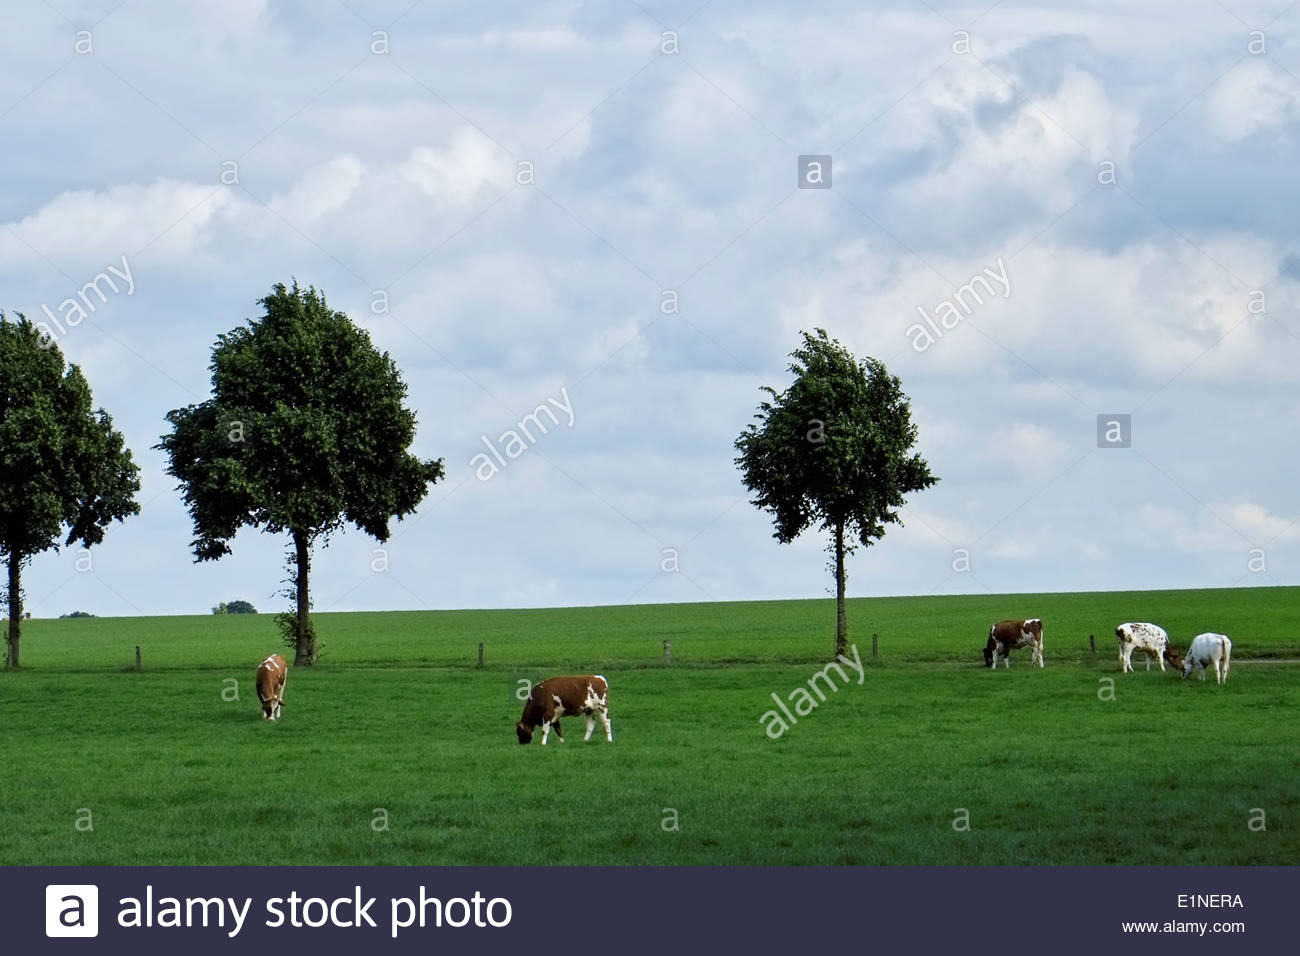 Young cattle graze in a field near the moated Raesfeld Castle in the Münsterland region of northern Germany. - Stock Image